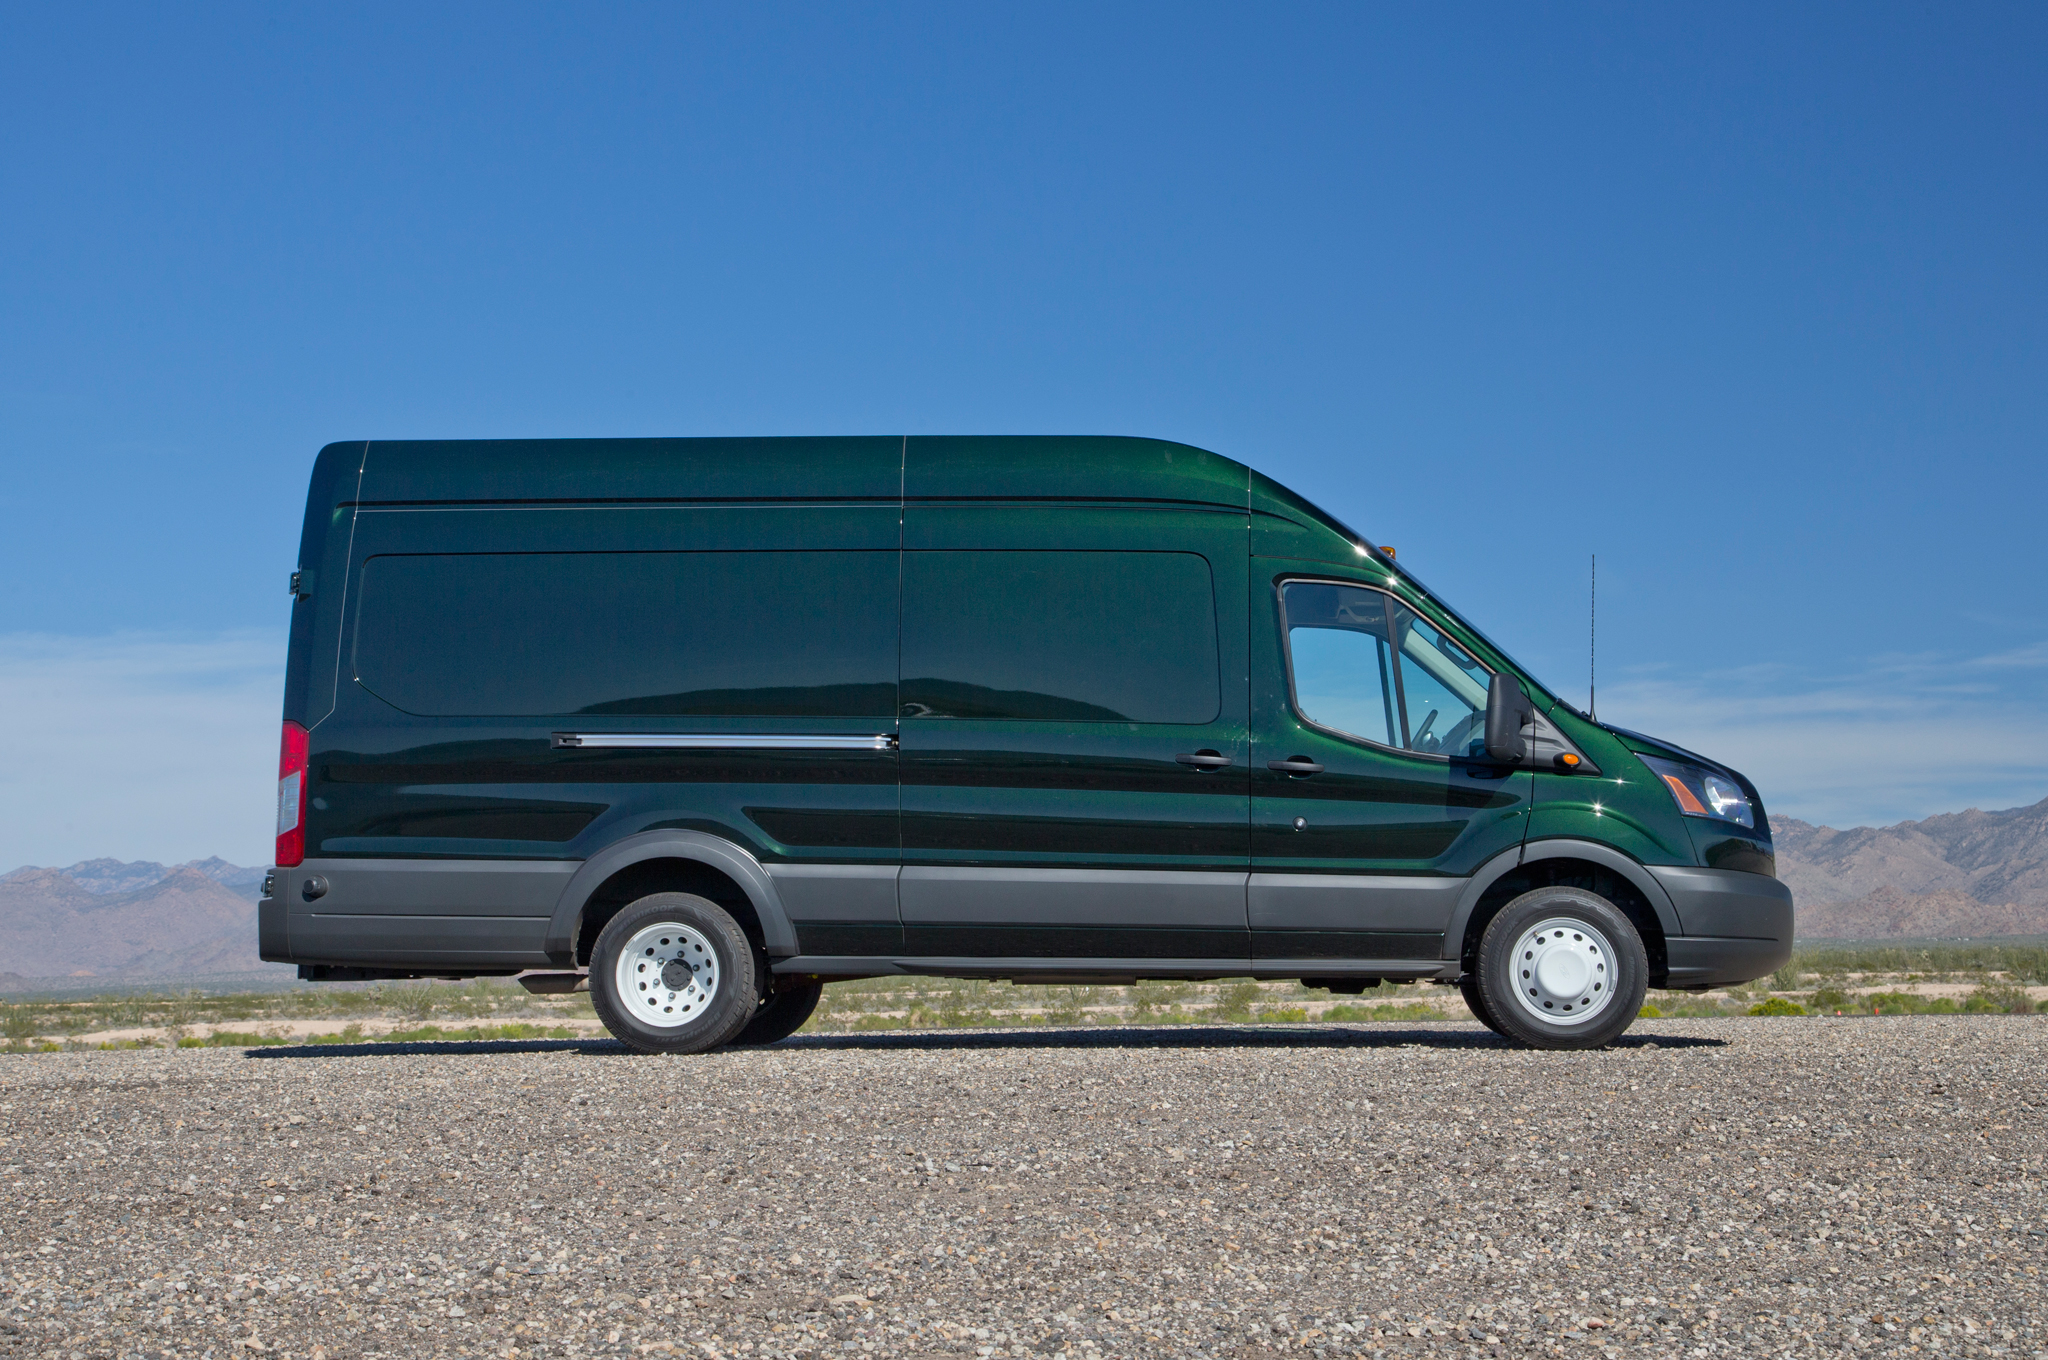 2015 Ford Transit 150 350hd Review (Photo 3 of 13)